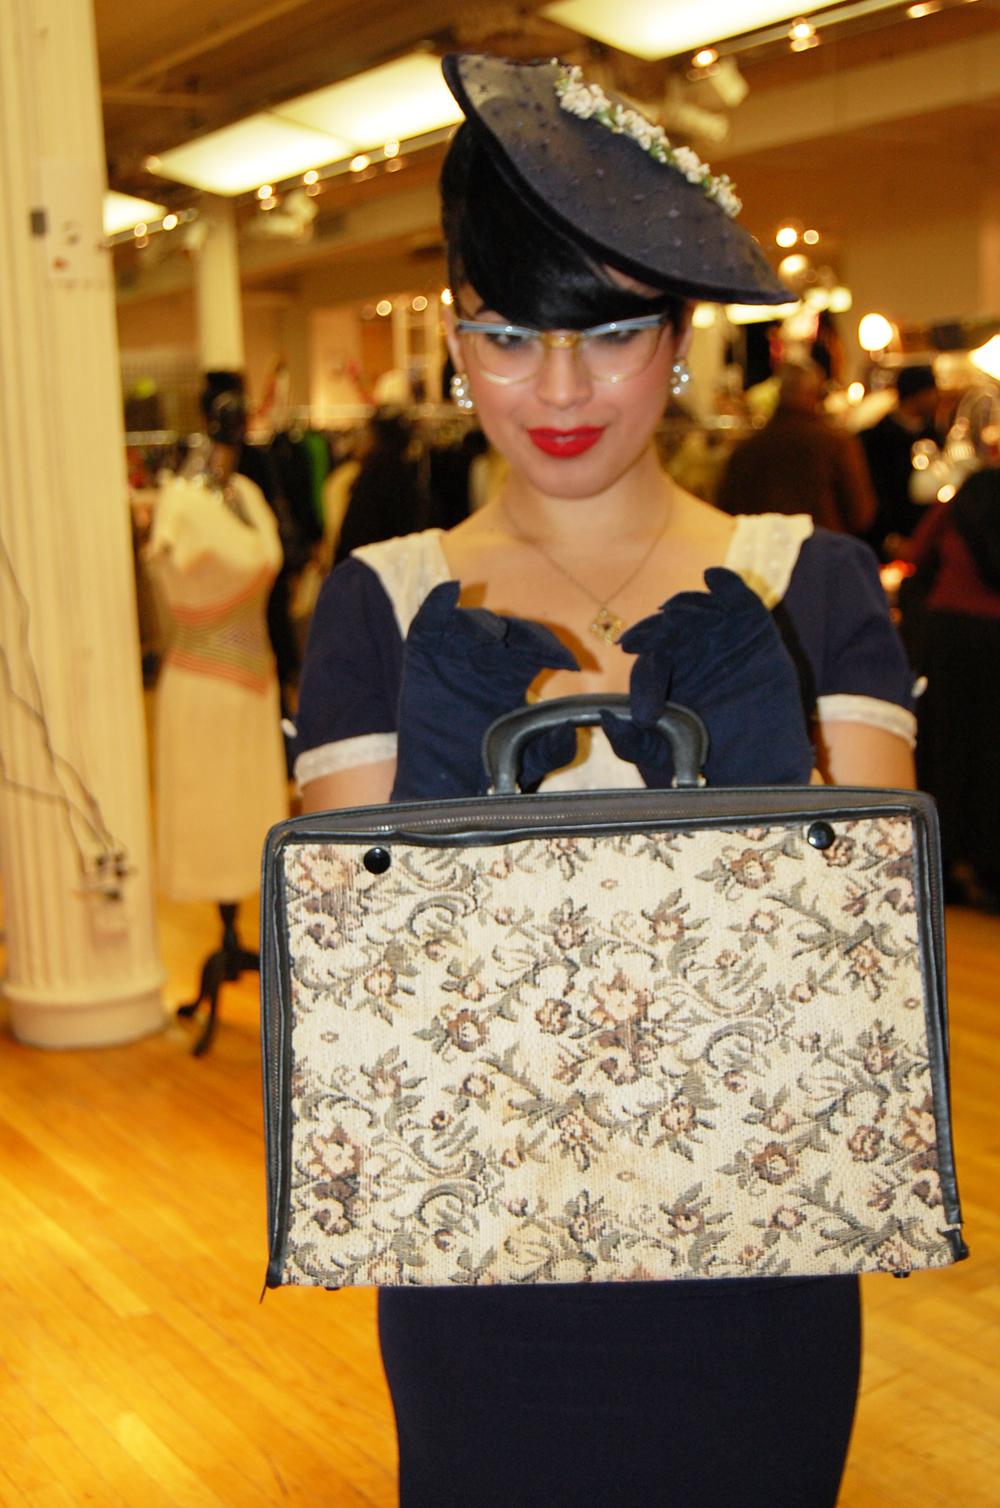 Discussion on this topic: The Diary: Manhattan Vintage Show More, the-diary-manhattan-vintage-show-more/